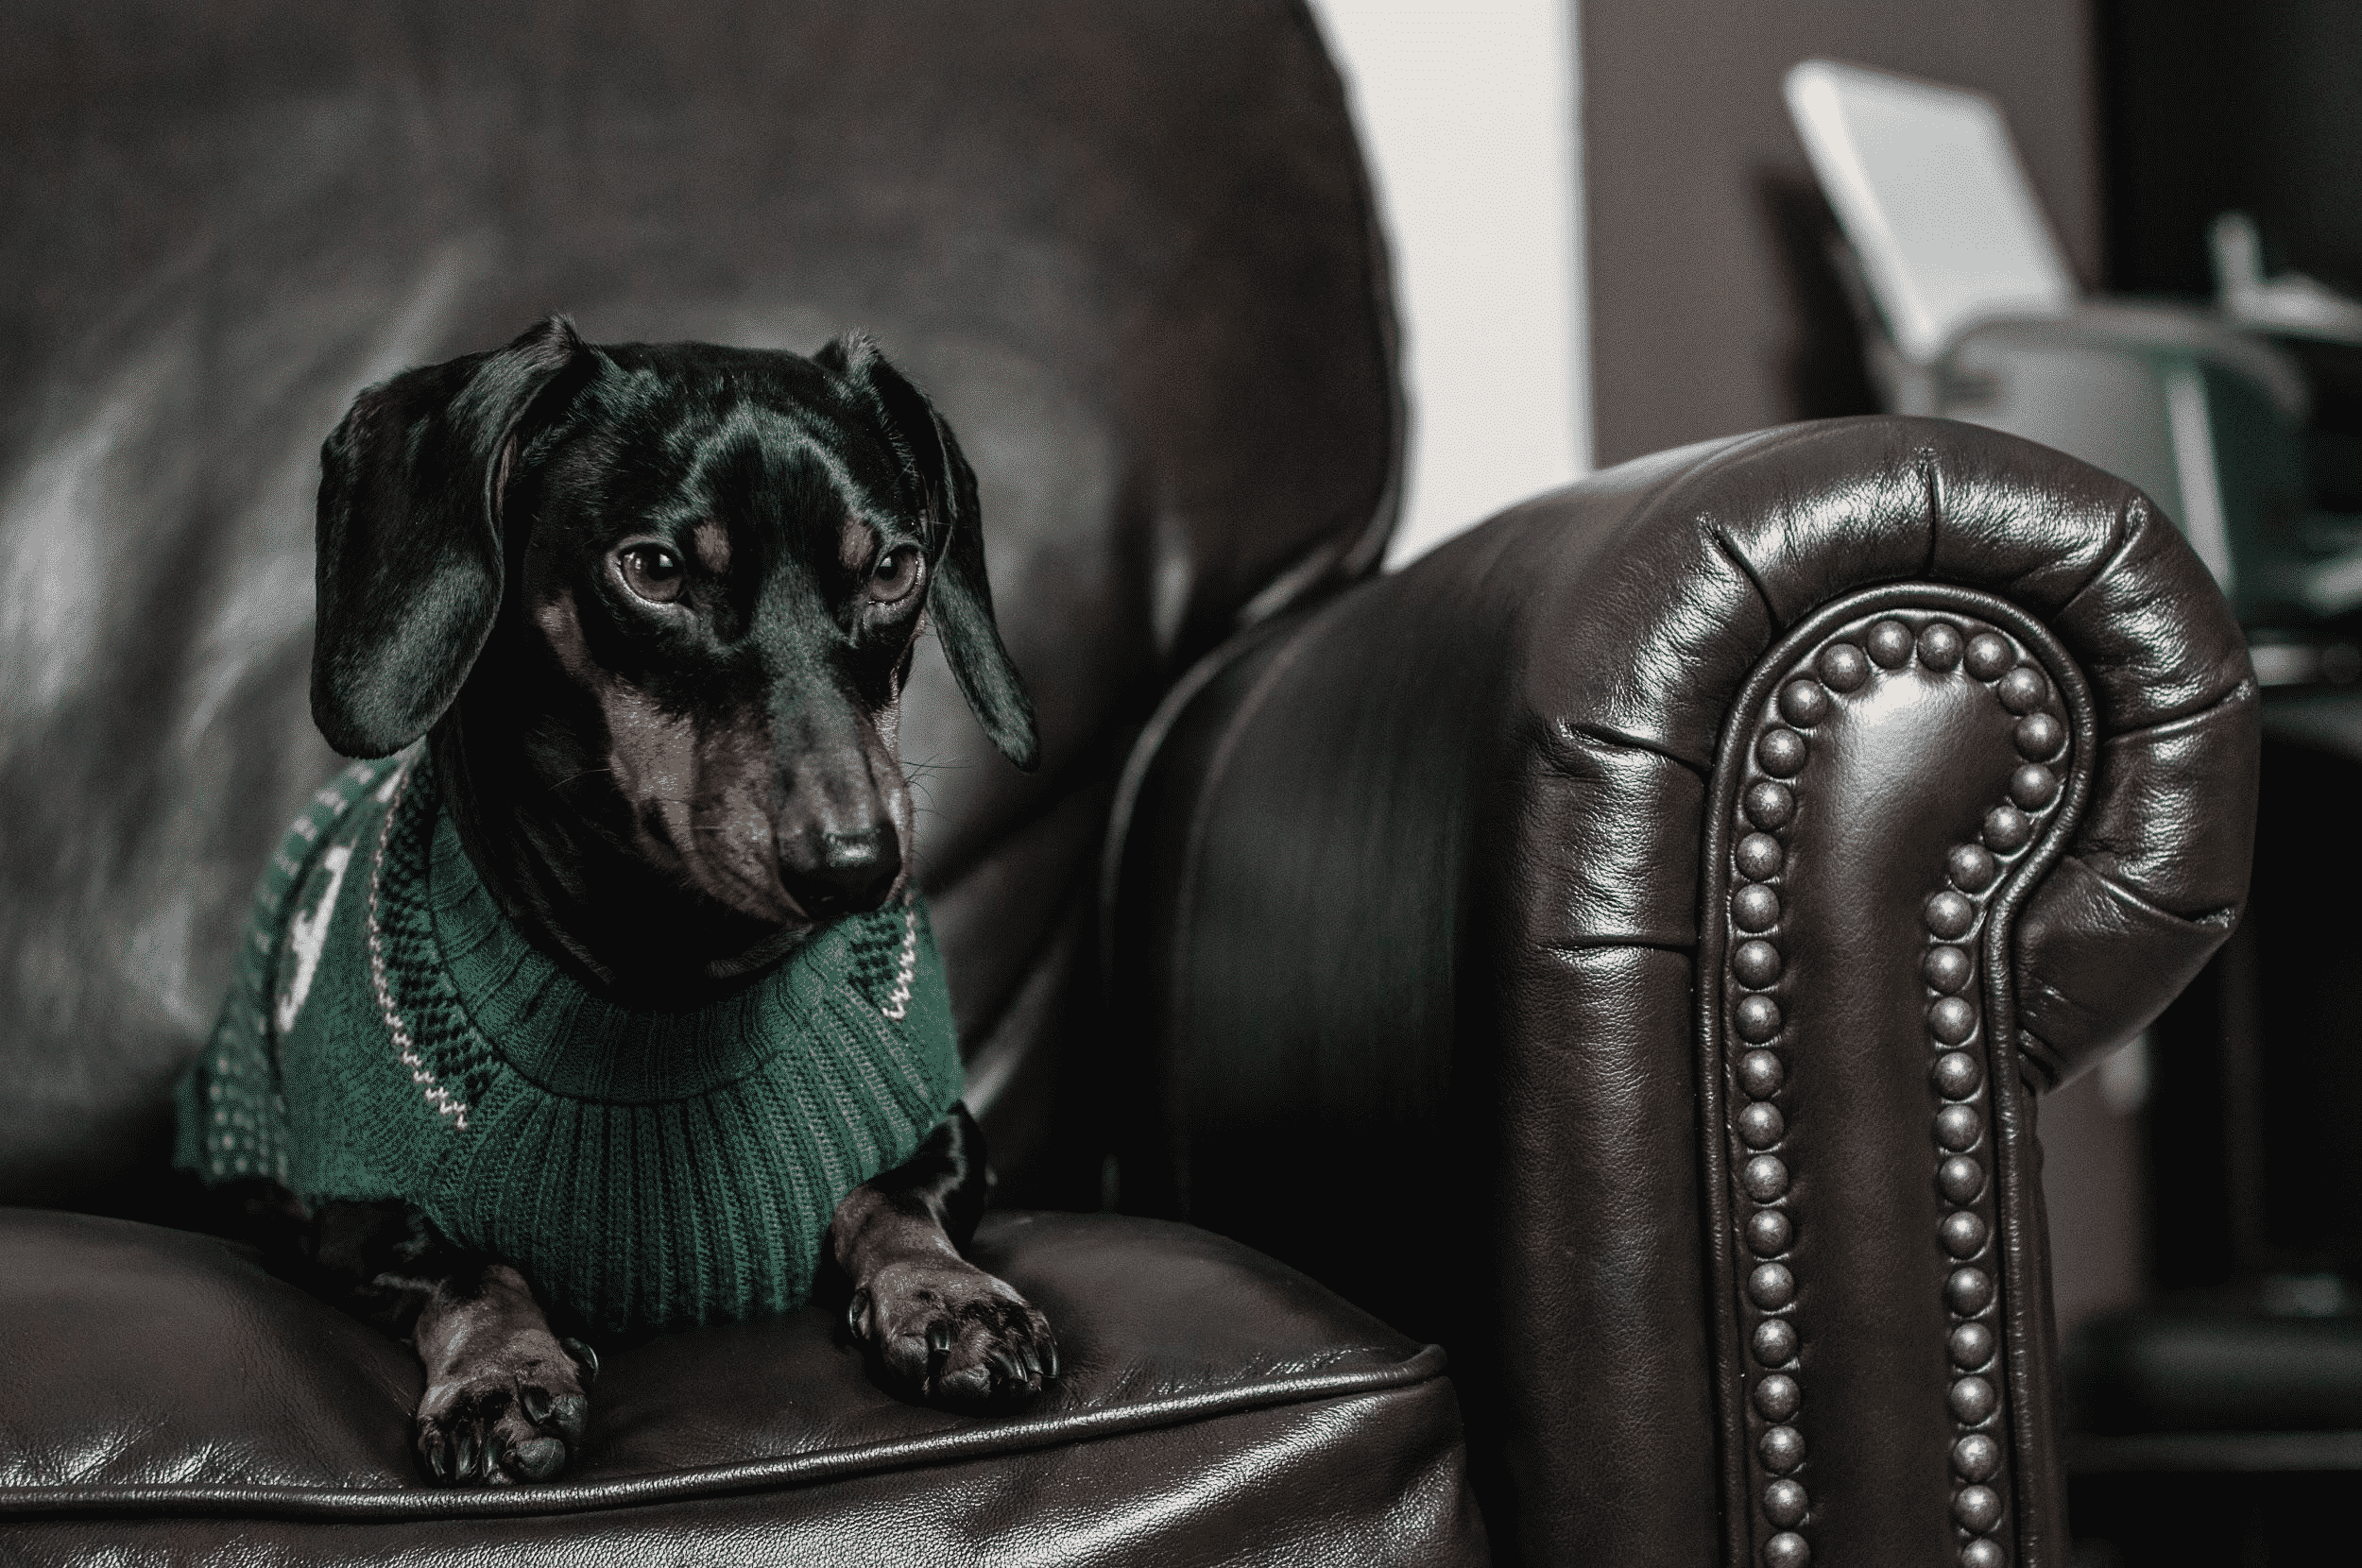 Dachshund on a couch